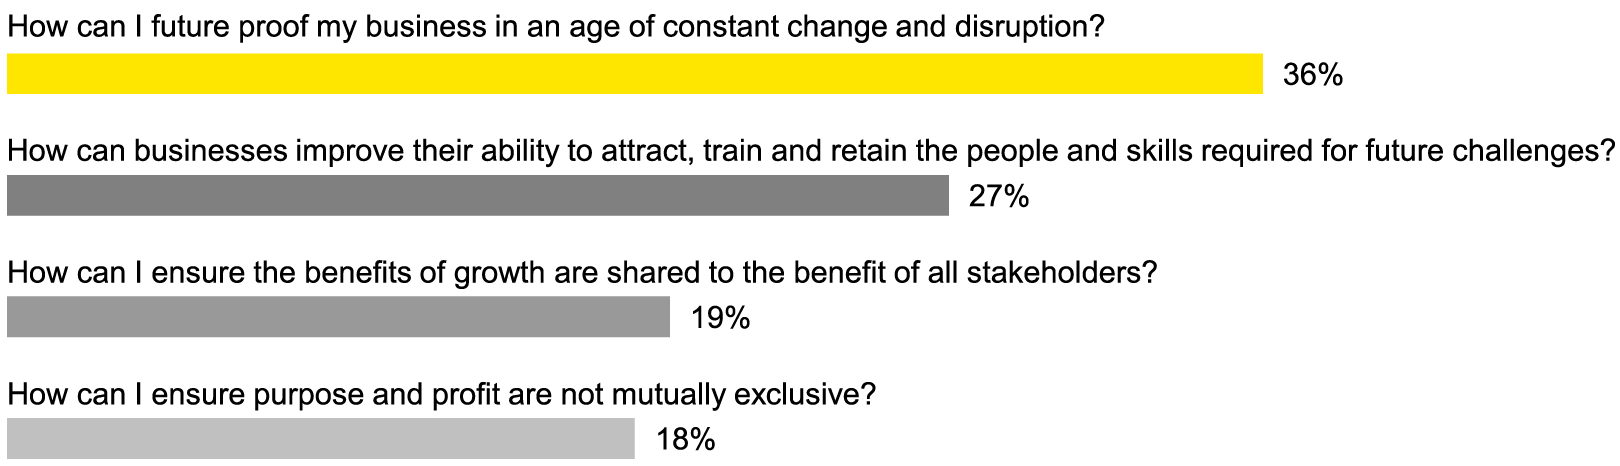 EY - What are your main strategic drivers for pursuing an acquisition:  JV or alliance outside your own sector?